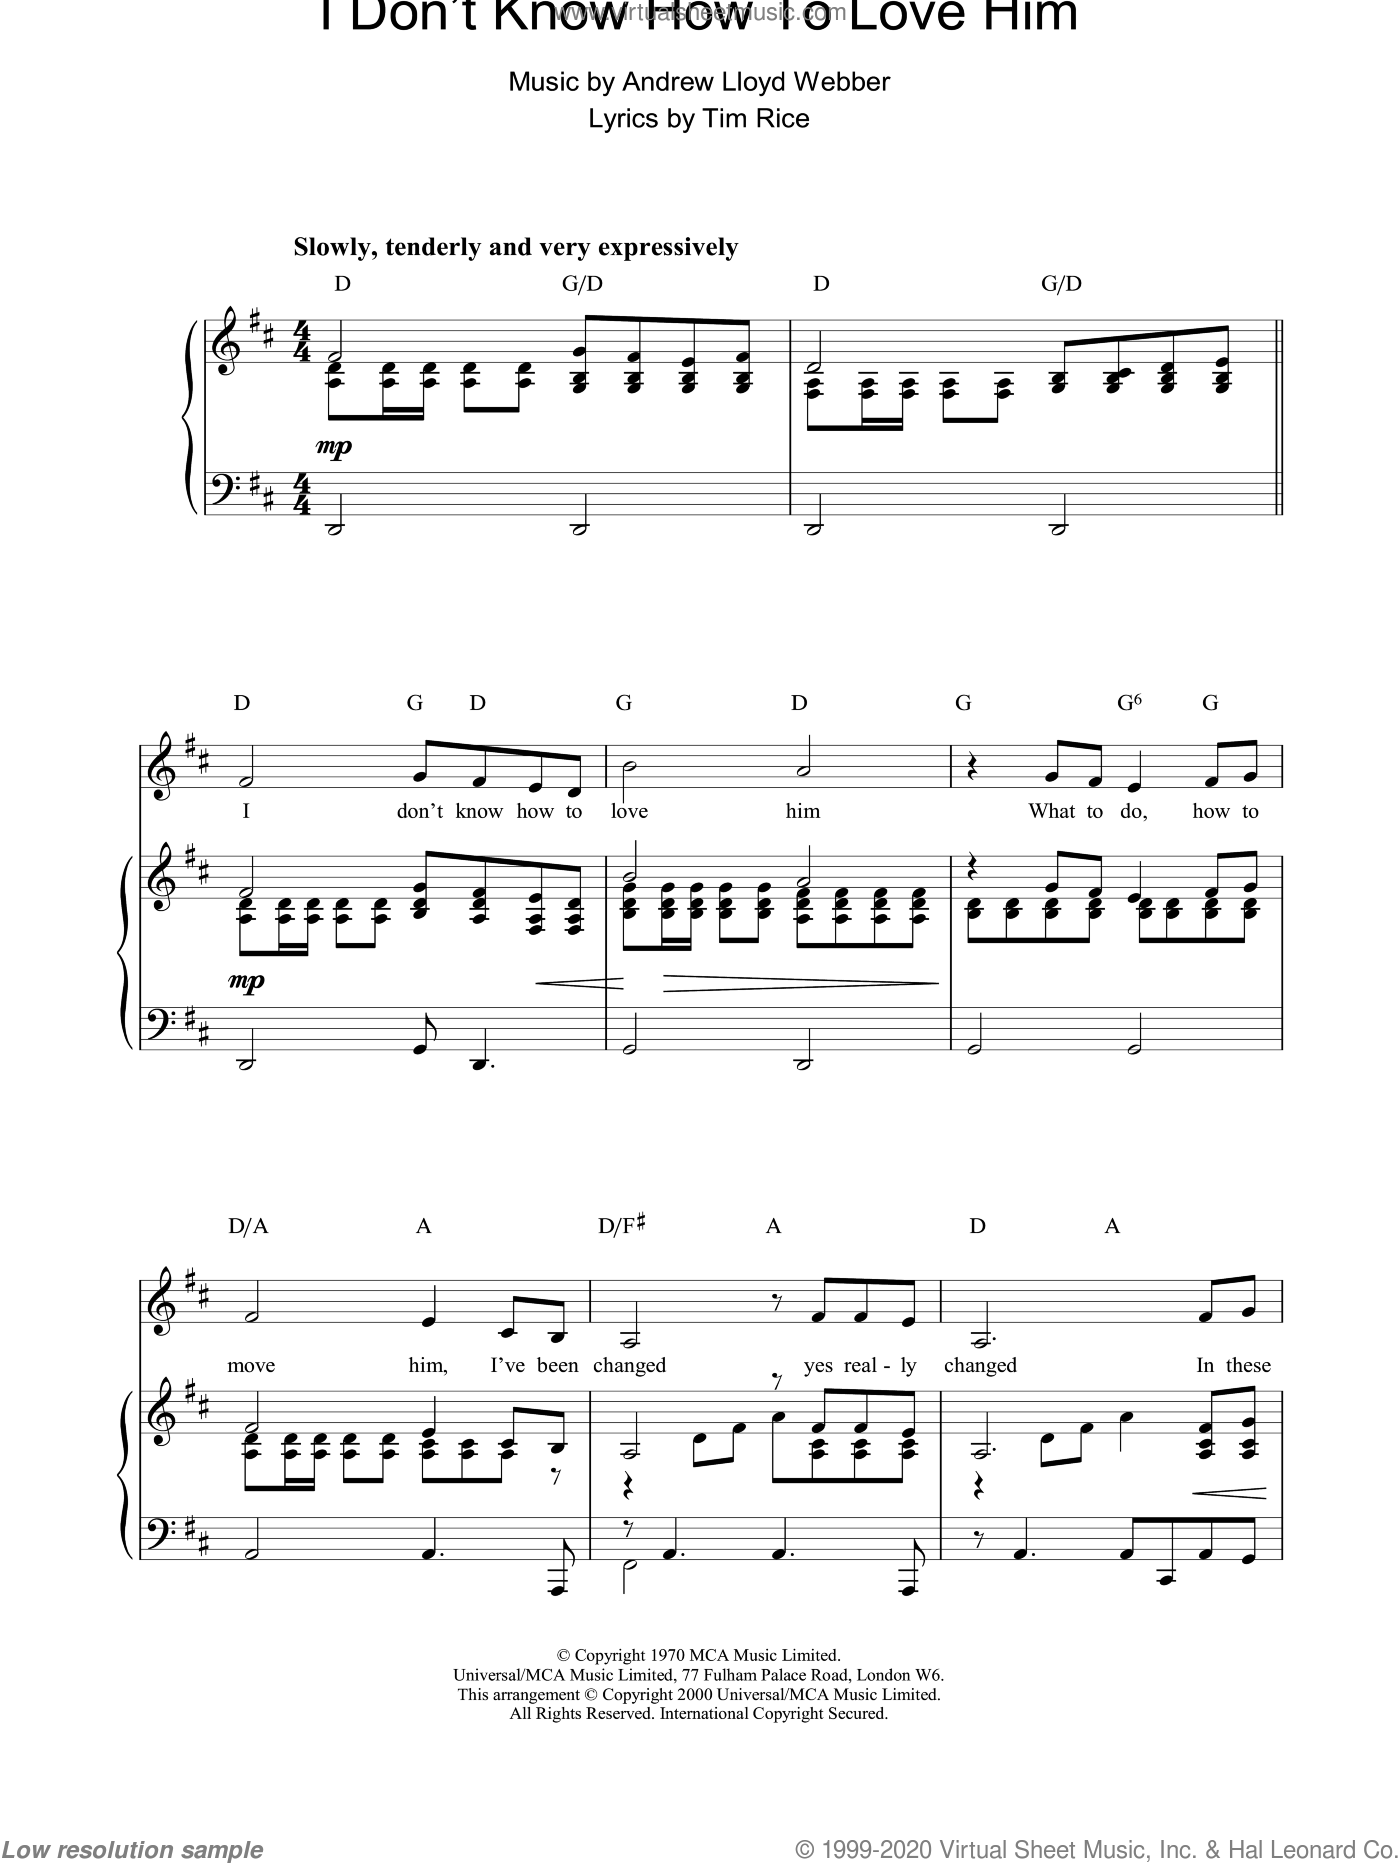 I Don't Know How To Love Him sheet music for voice, piano or guitar by Andrew Lloyd Webber